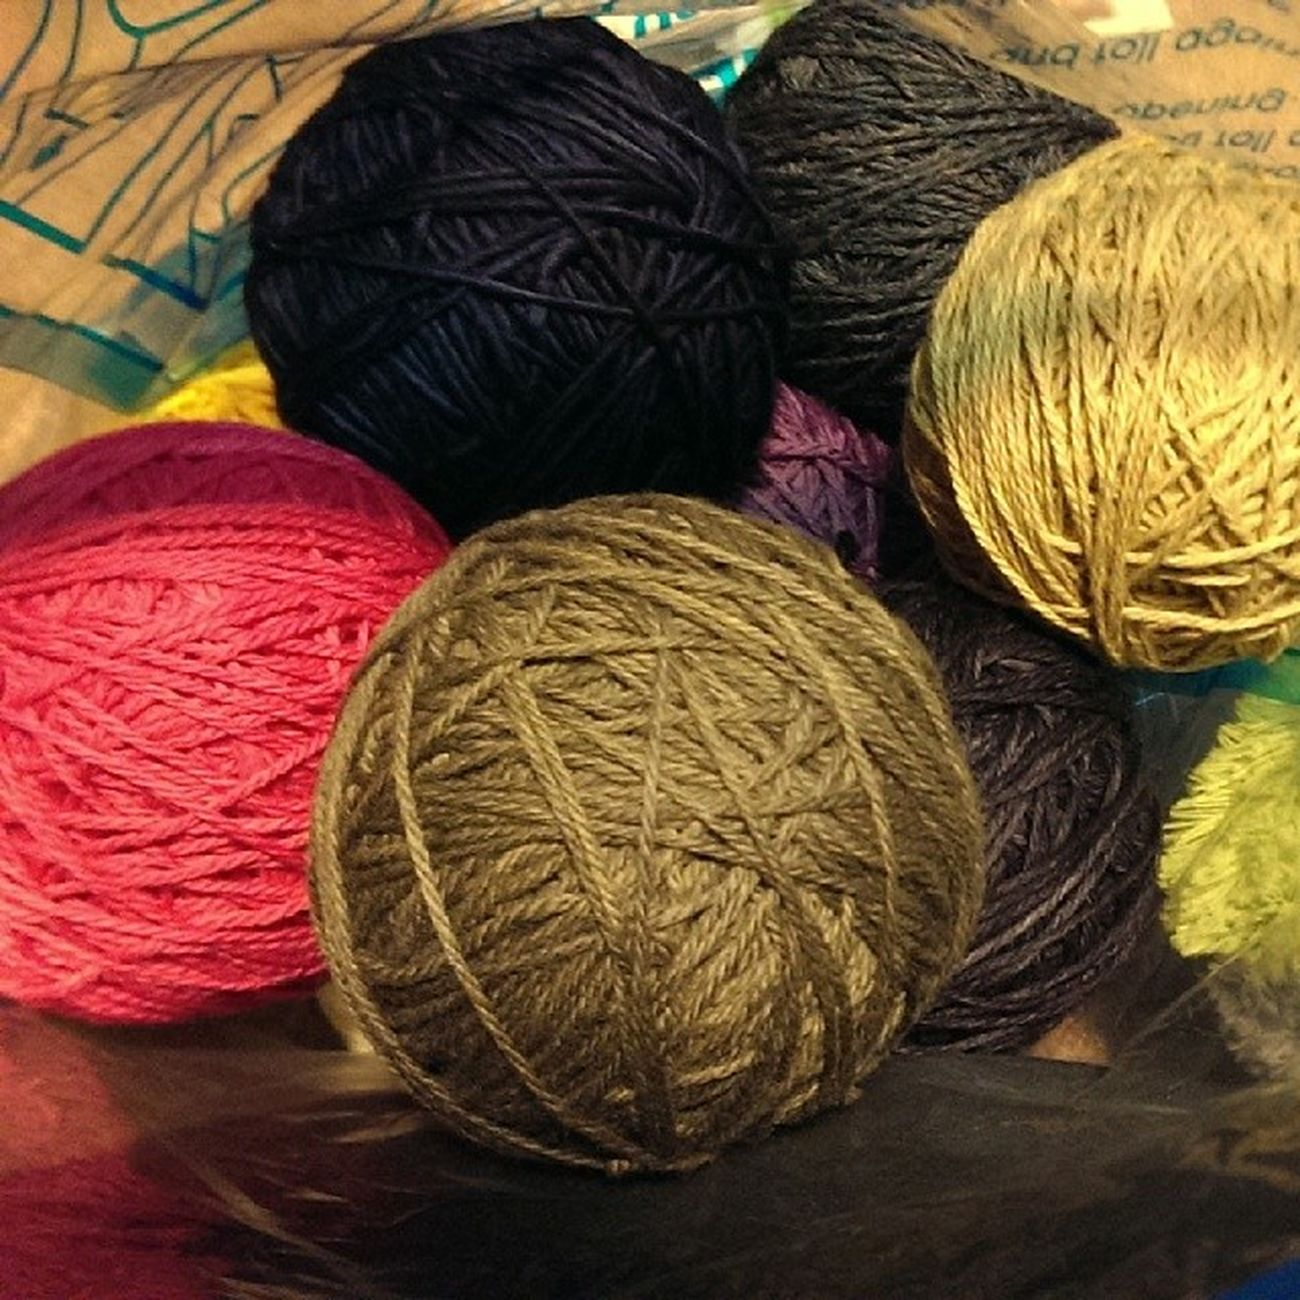 Evening spent preparing Hanks for Knitting Hats . Malabrigo  , stonehedgemills, lornaslaces, swanisland. wool yumminess